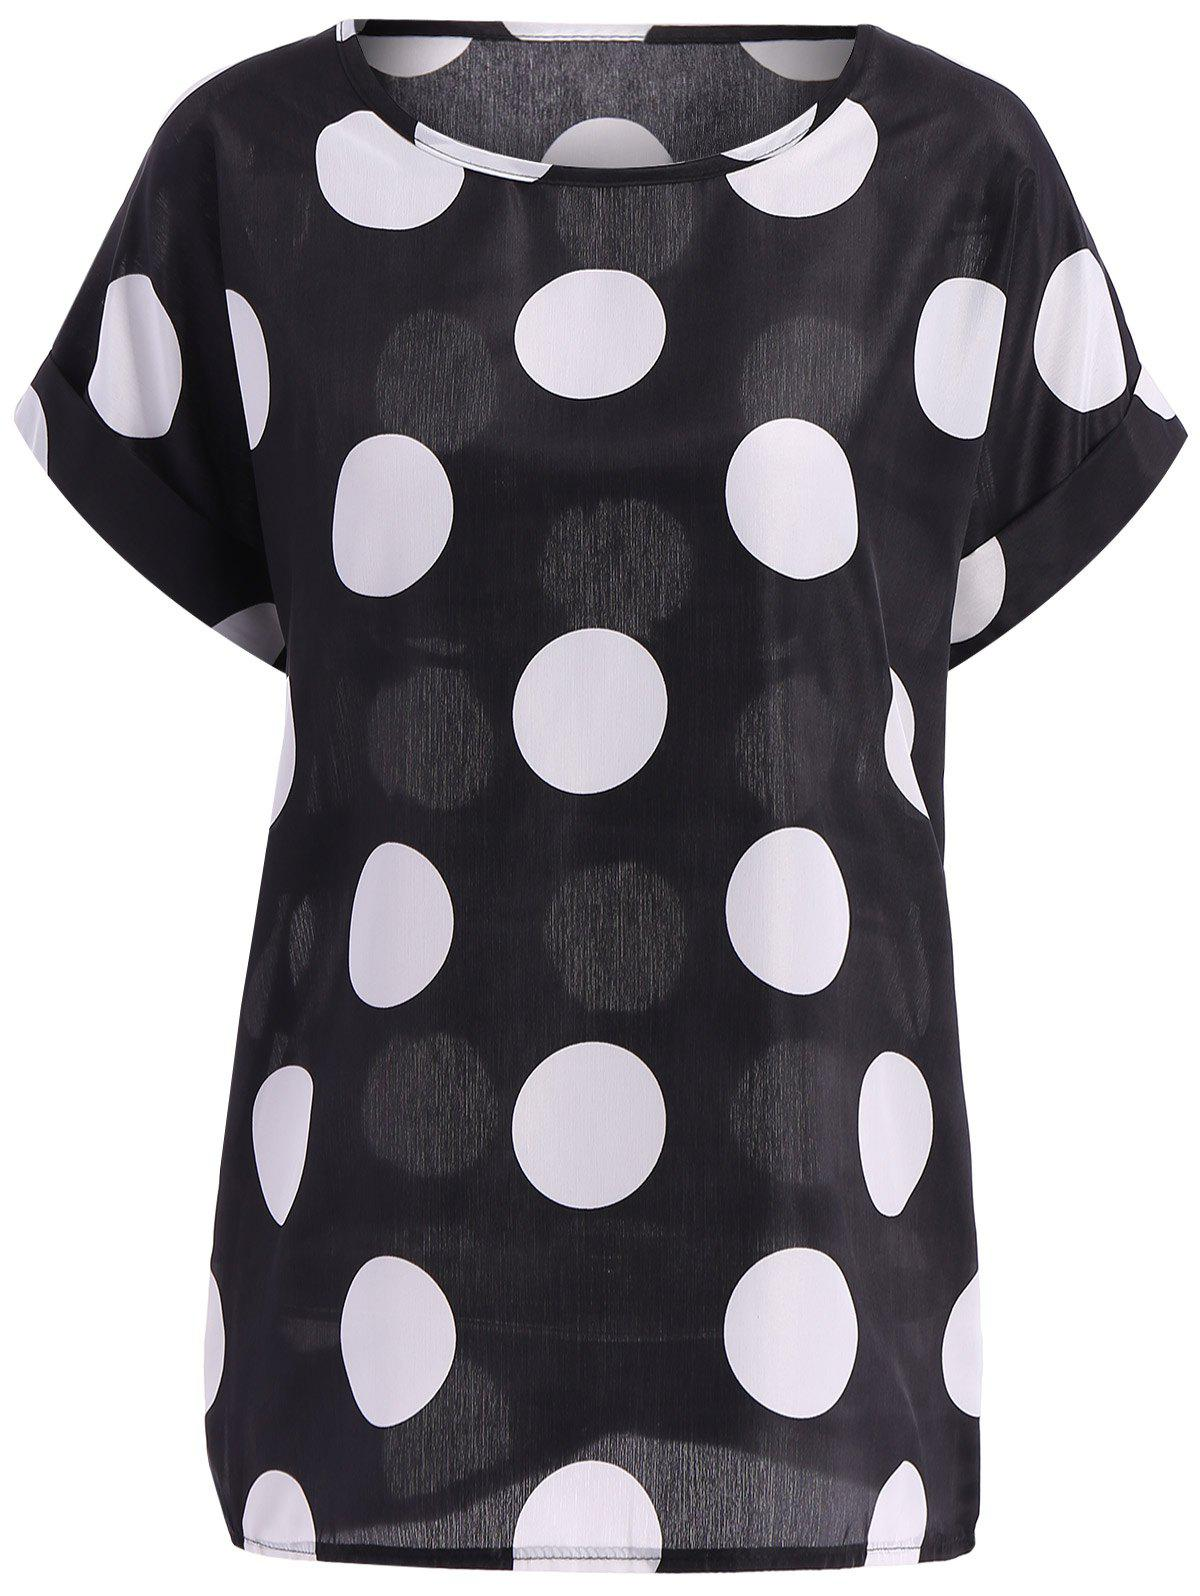 Casual Summer Women's Plus Size Scoop Neck Polka Dot Pattern Short Sleeves Blouse